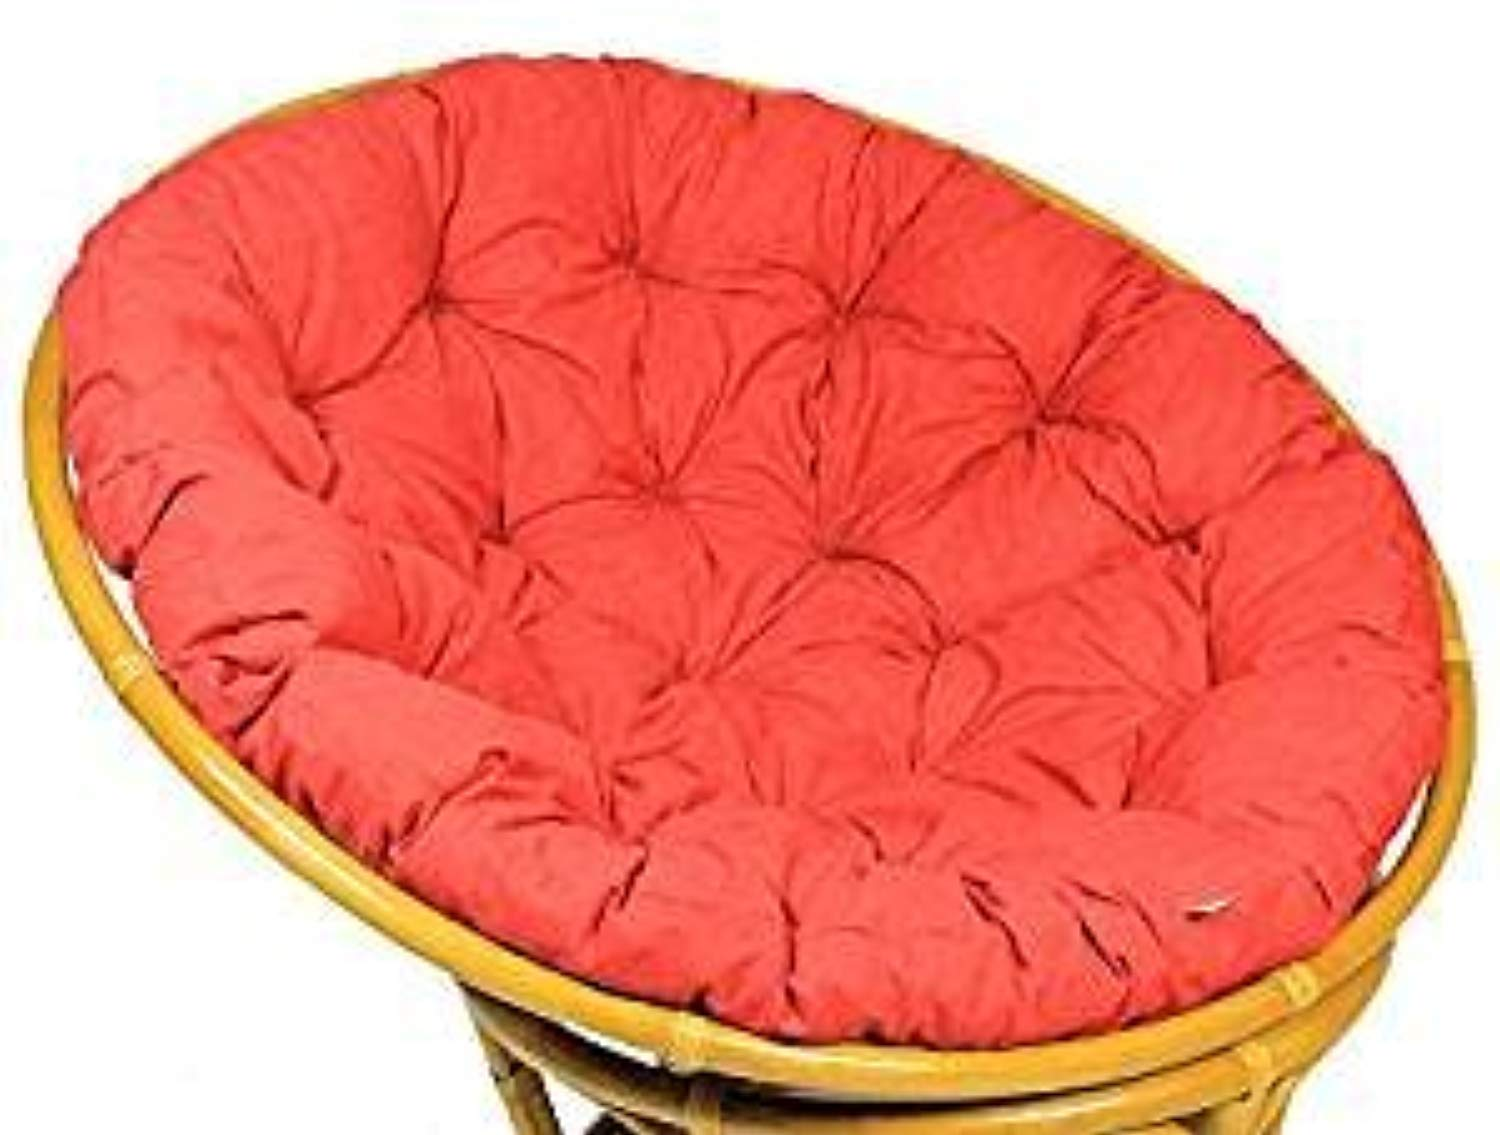 IRA Cushion for Papasan Chair Replacement - IRA Furniture